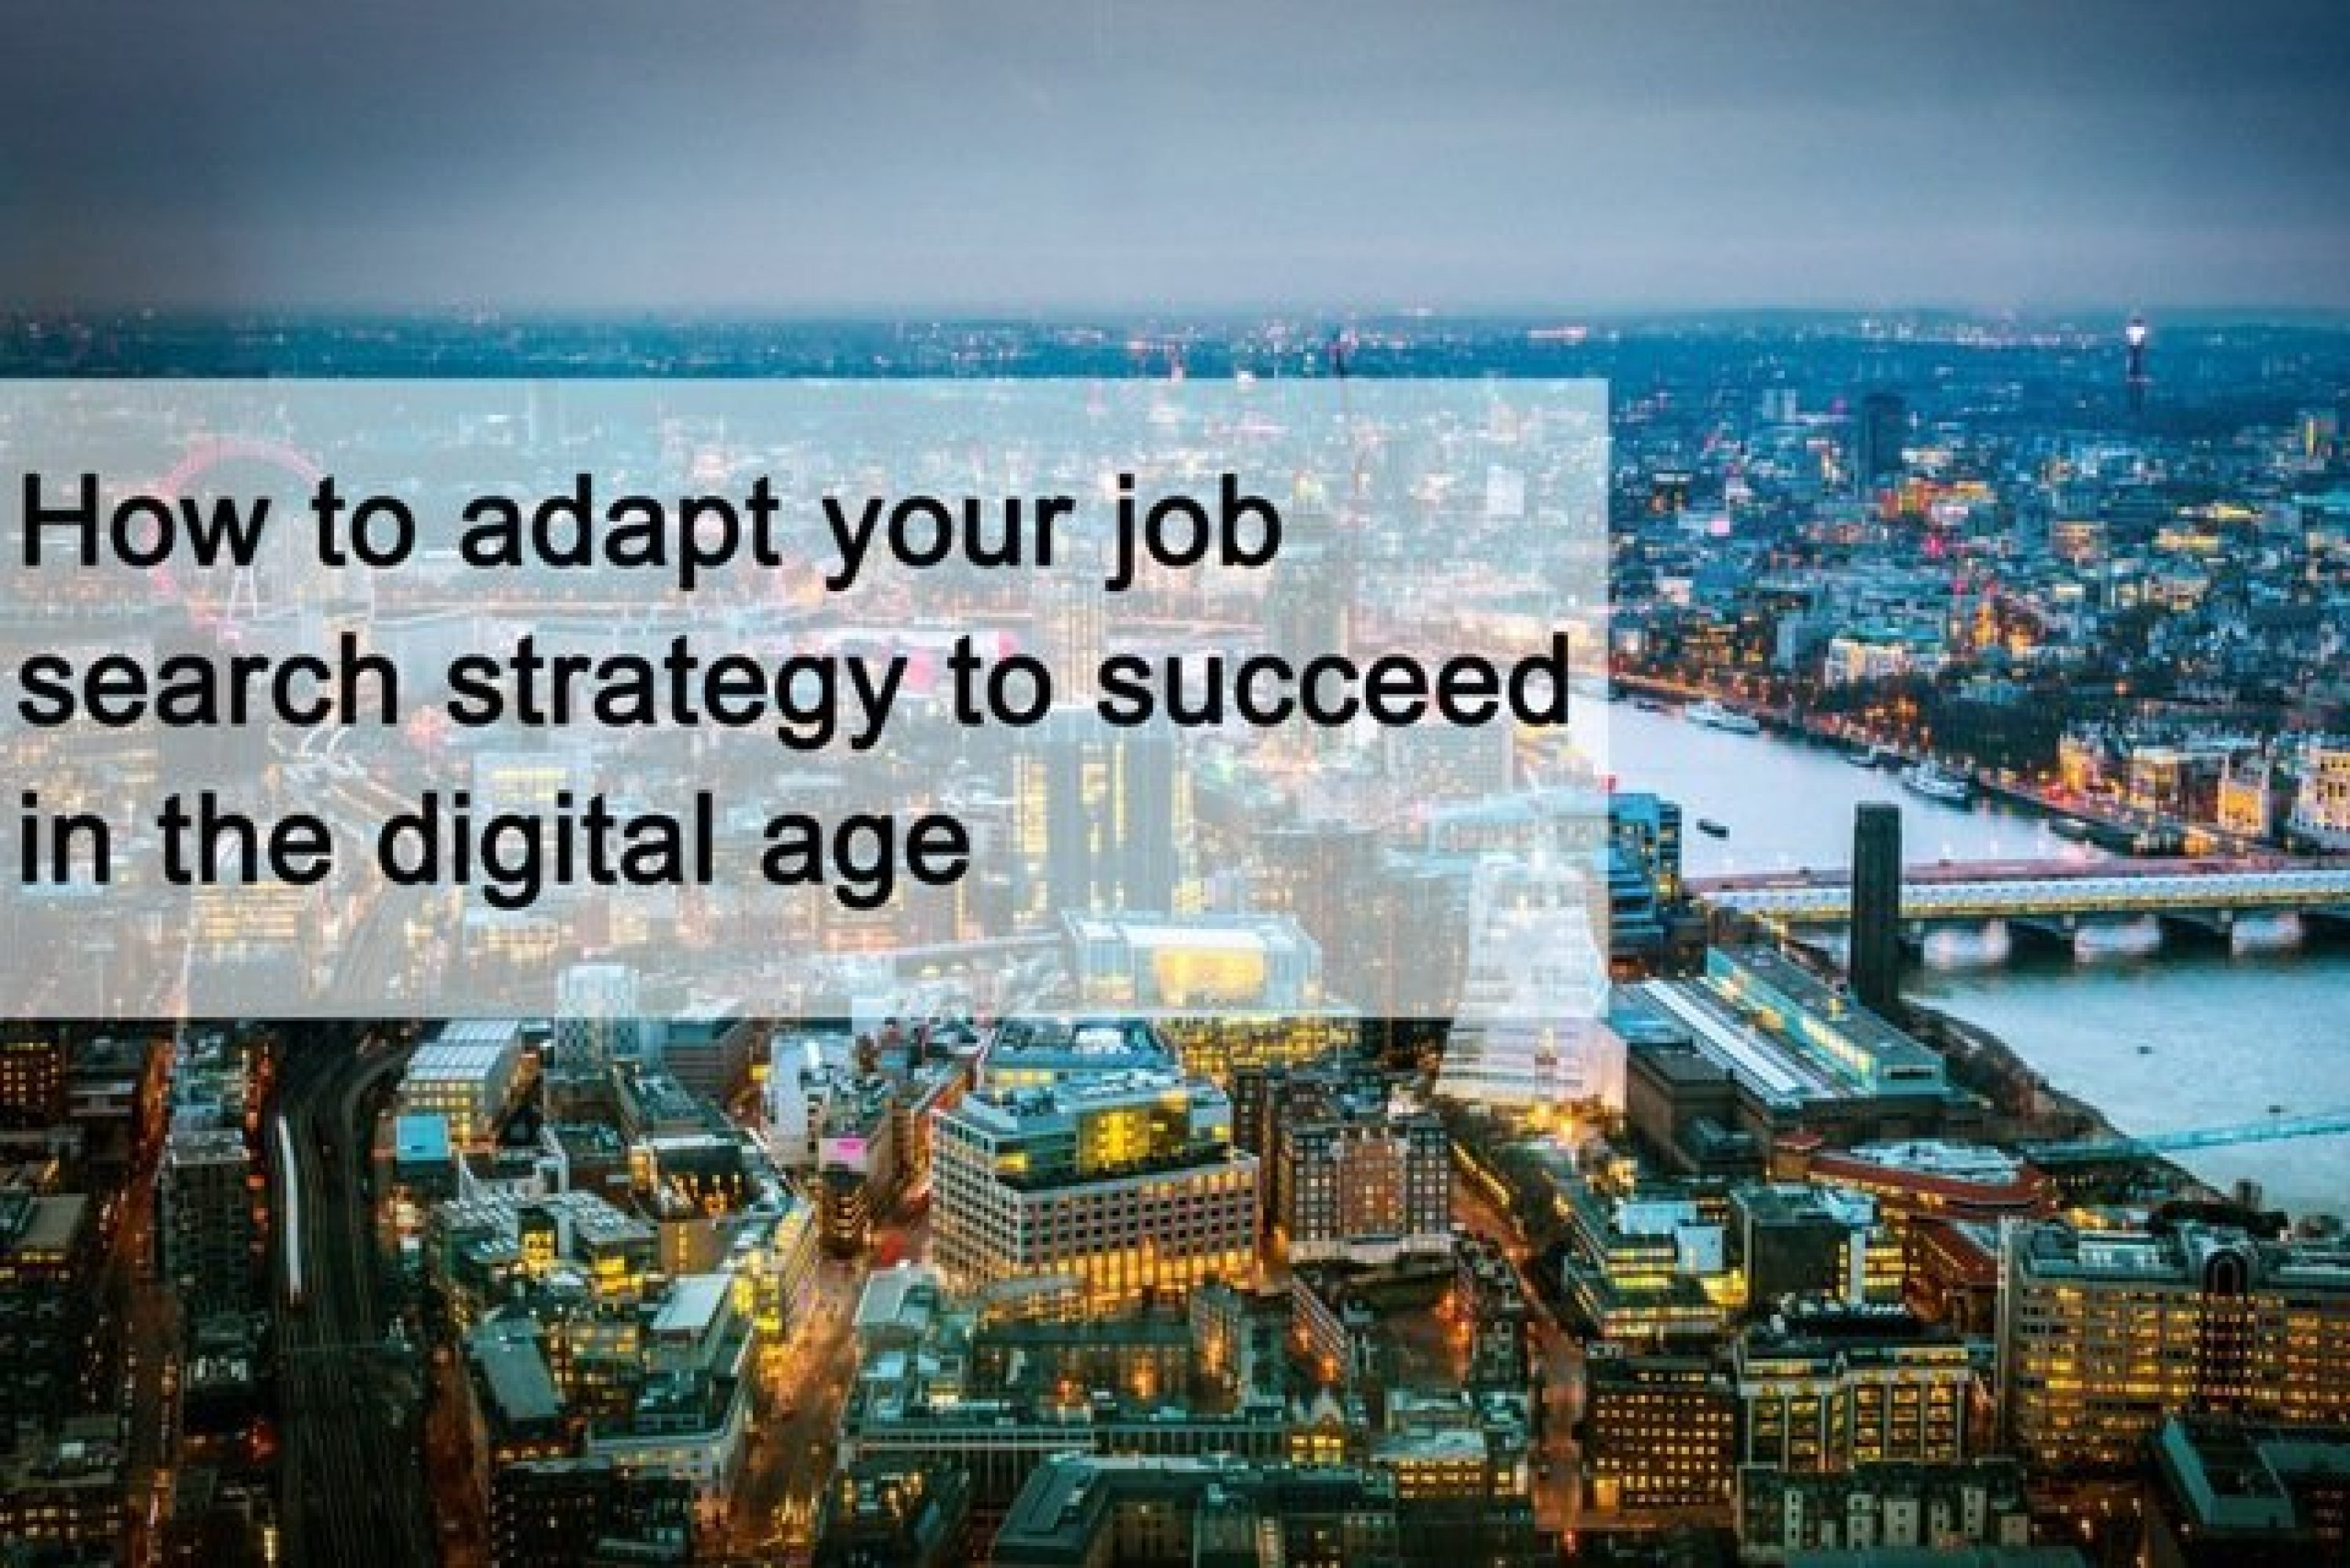 How to adapt your job search strategy to succeed in the digital age